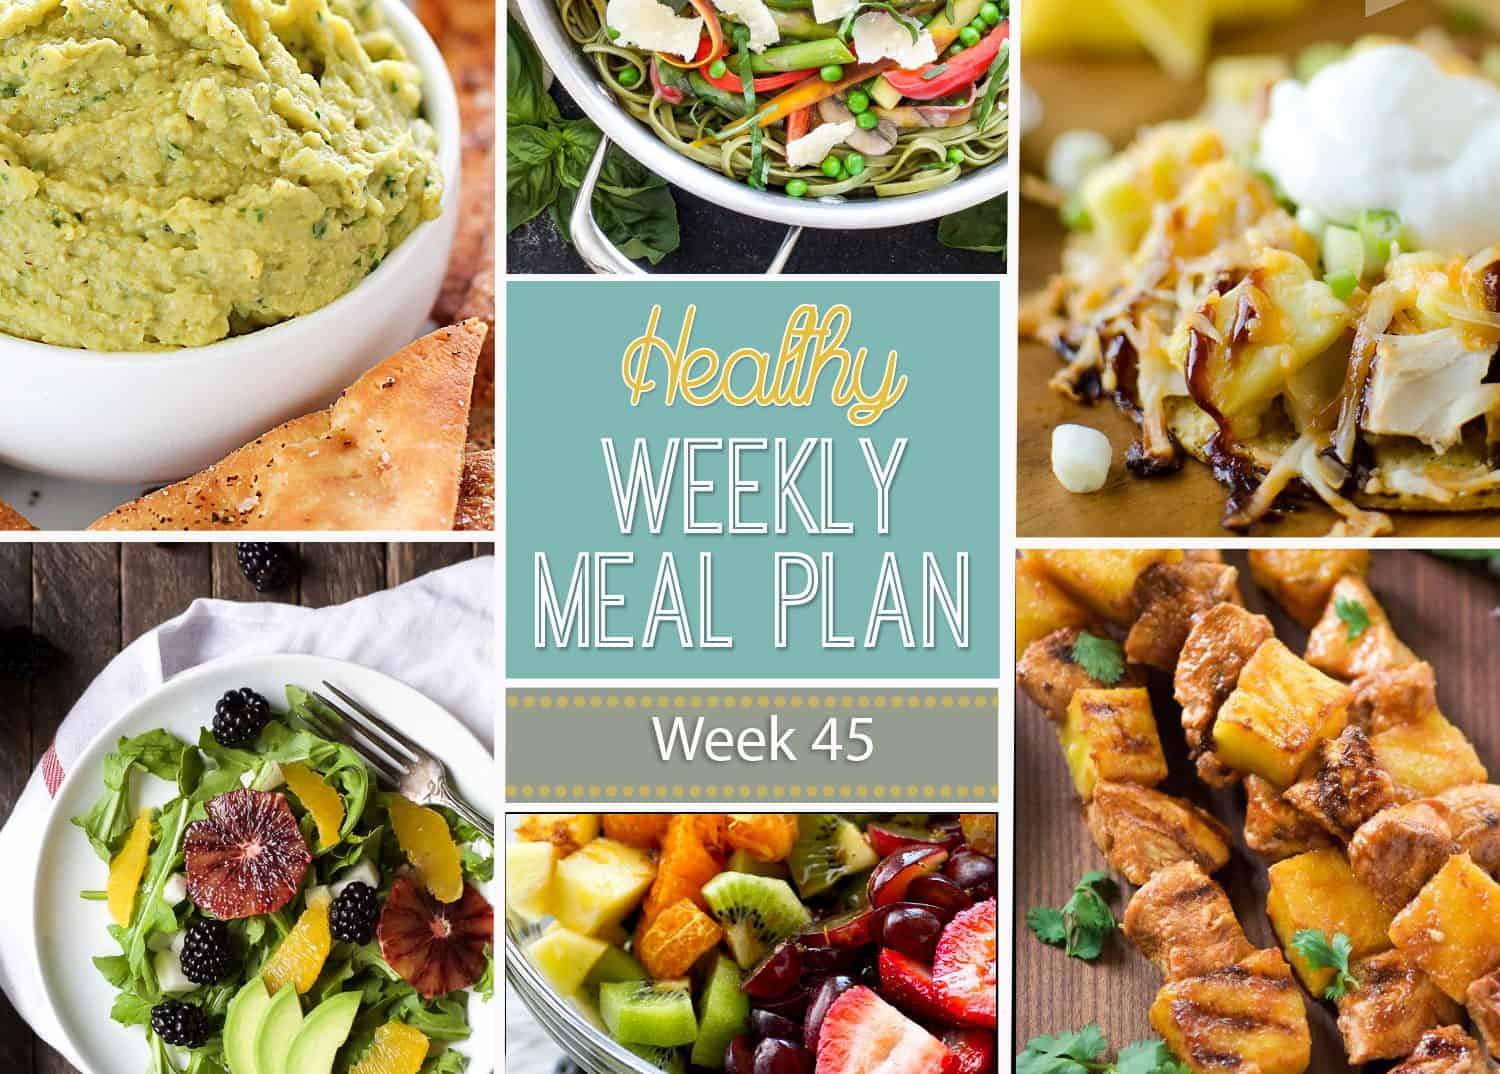 Plan Snack Cuisine Healthy Meal Plan Week 45 With Salt And Wit